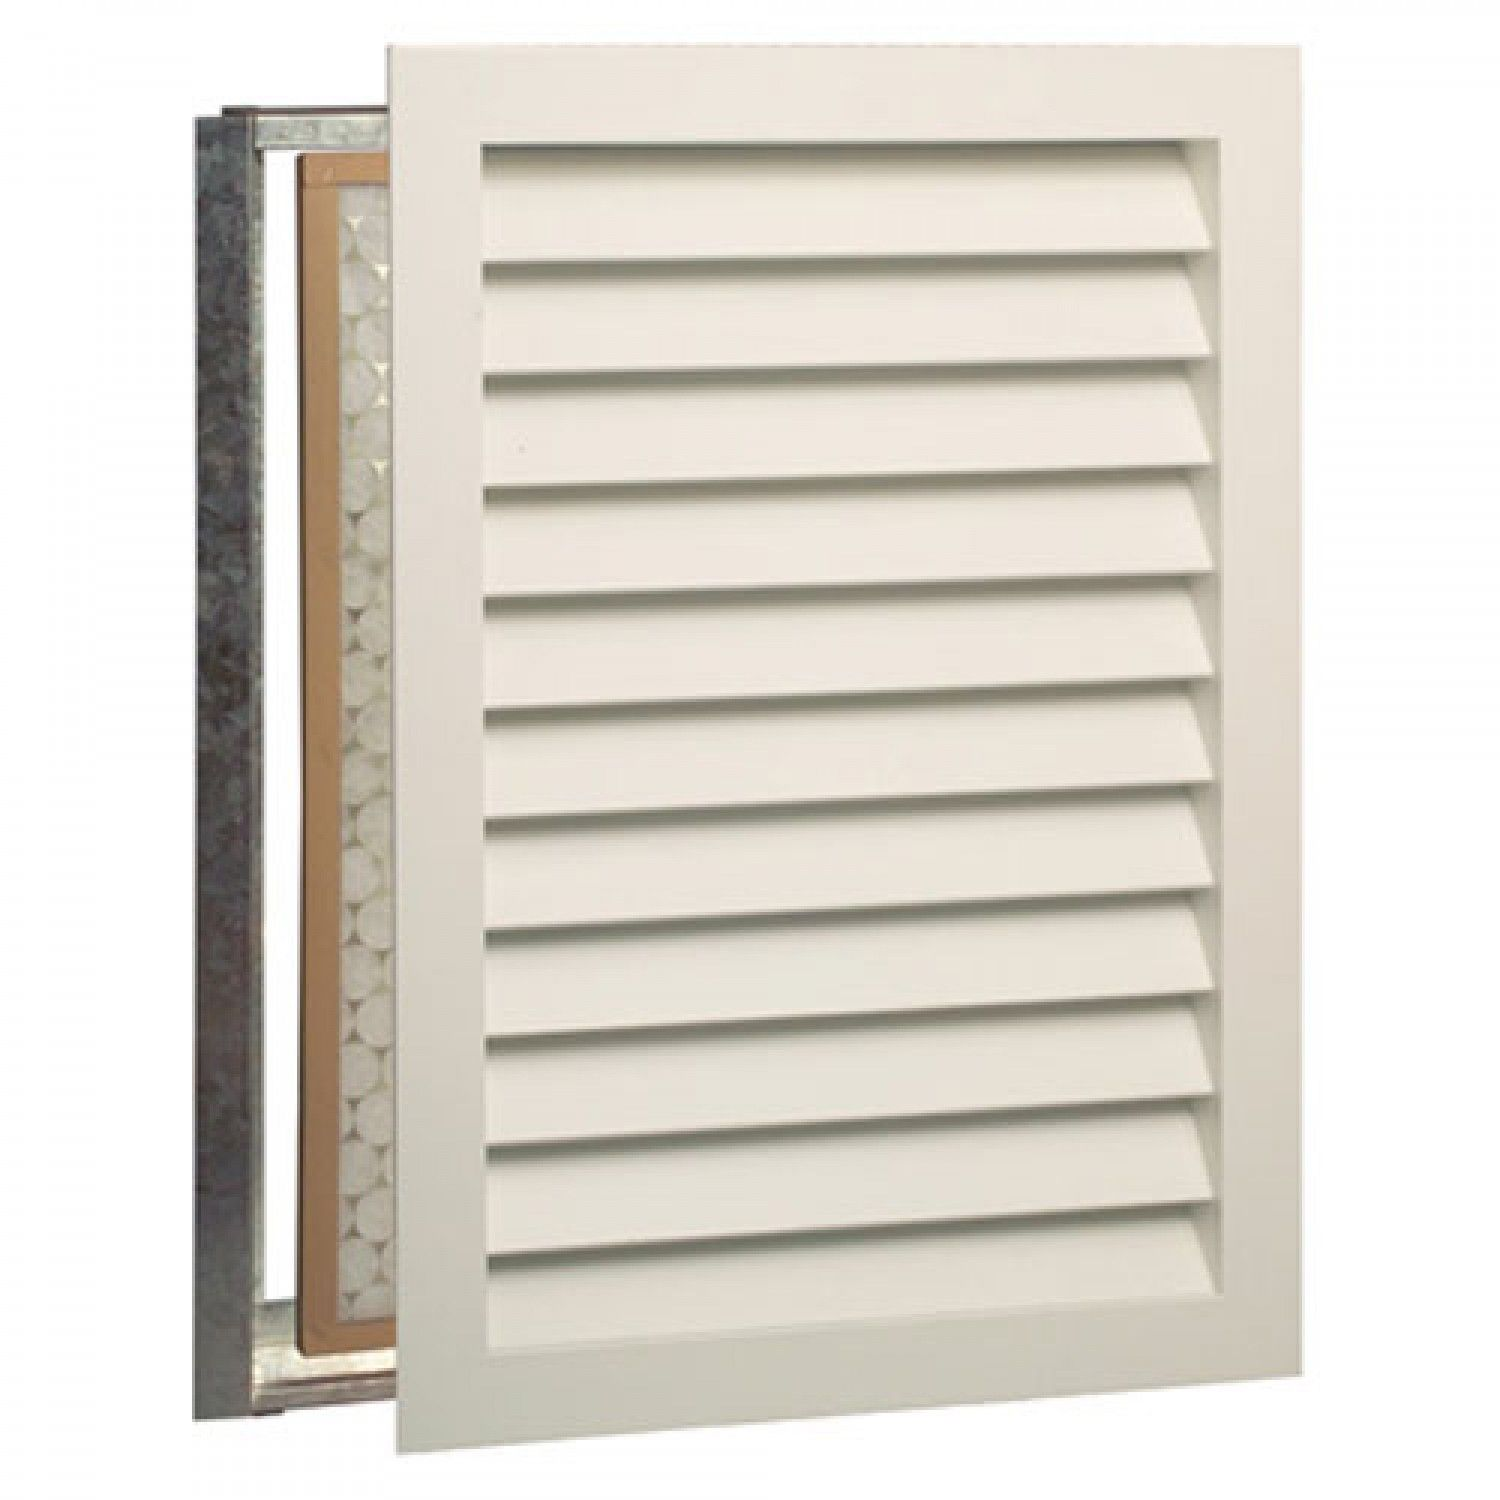 Premier Wood Air Return Grille Registers Hardware